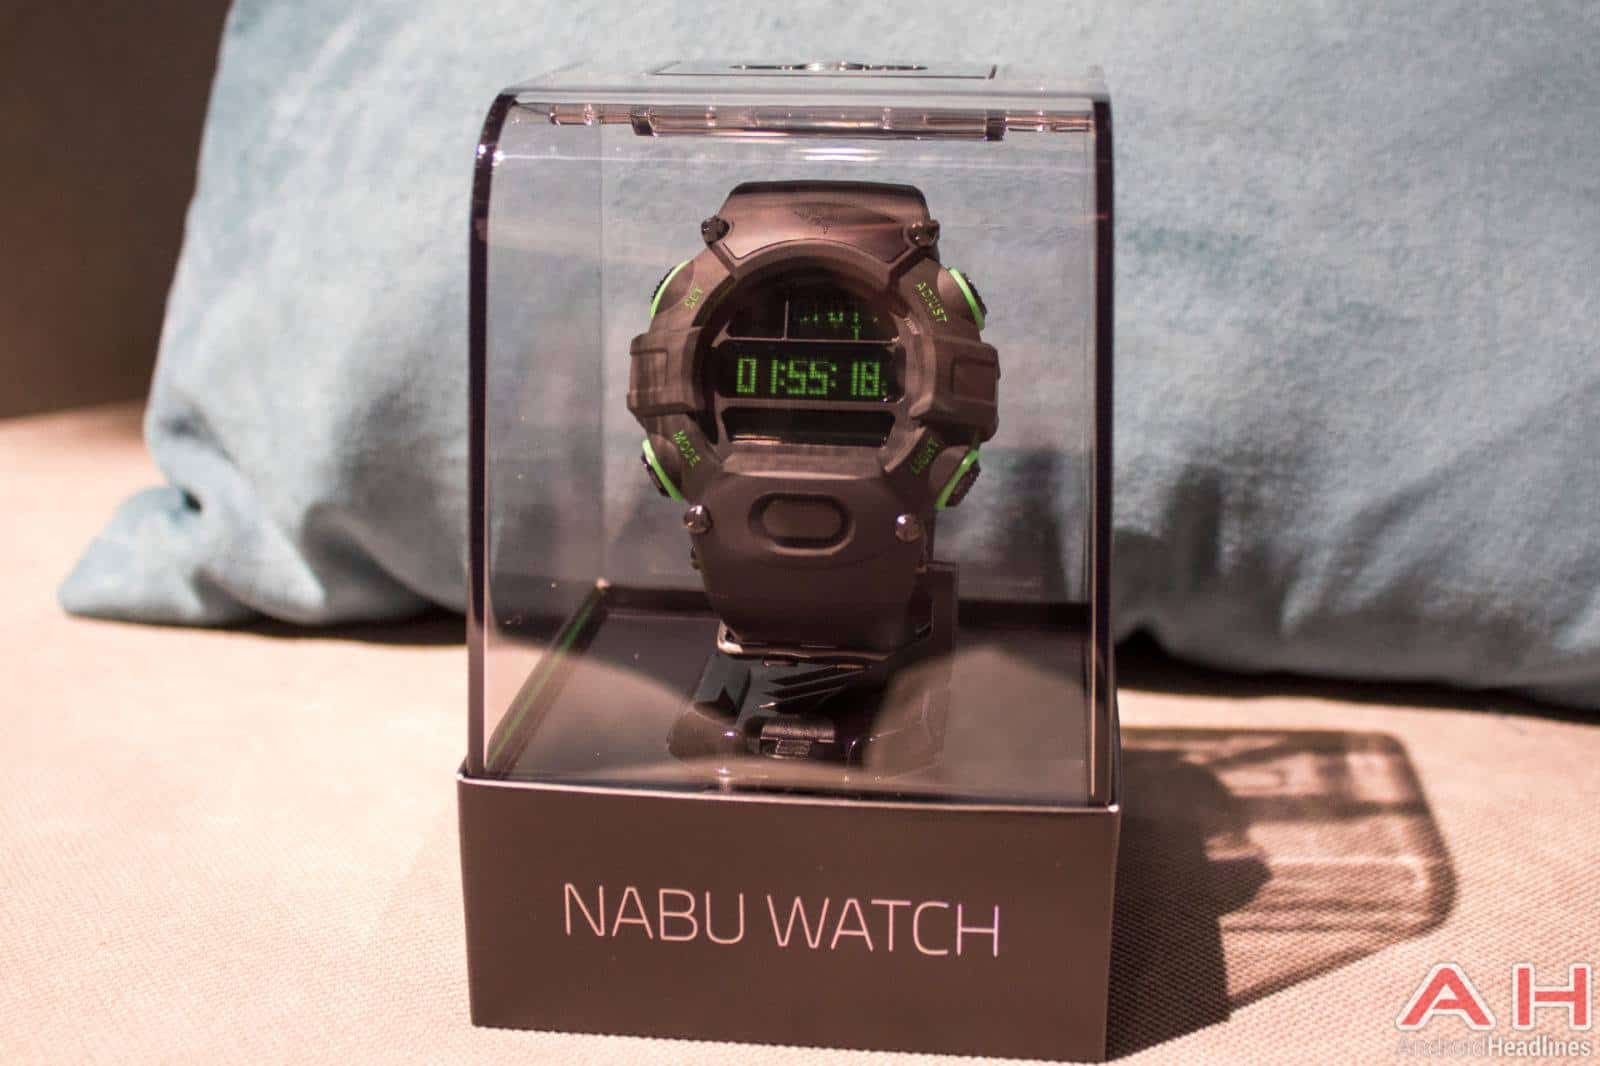 Razer-Nabu-Watch-AH-9